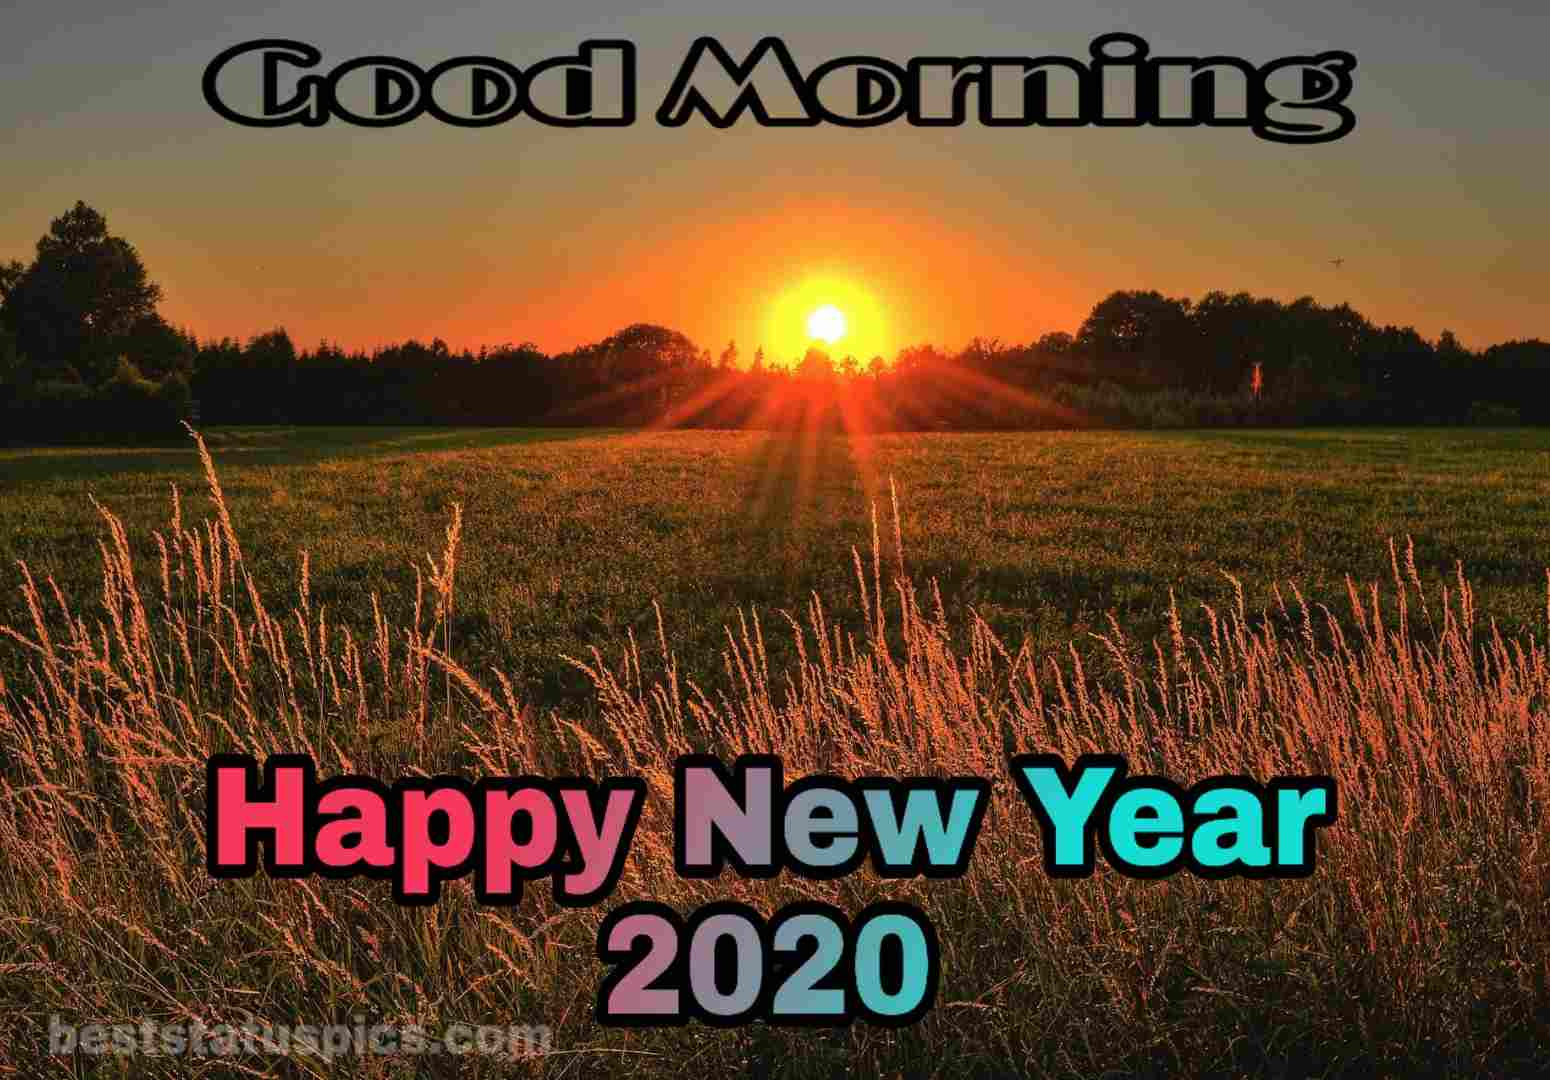 Good morning happy new year 2020 with sunrise